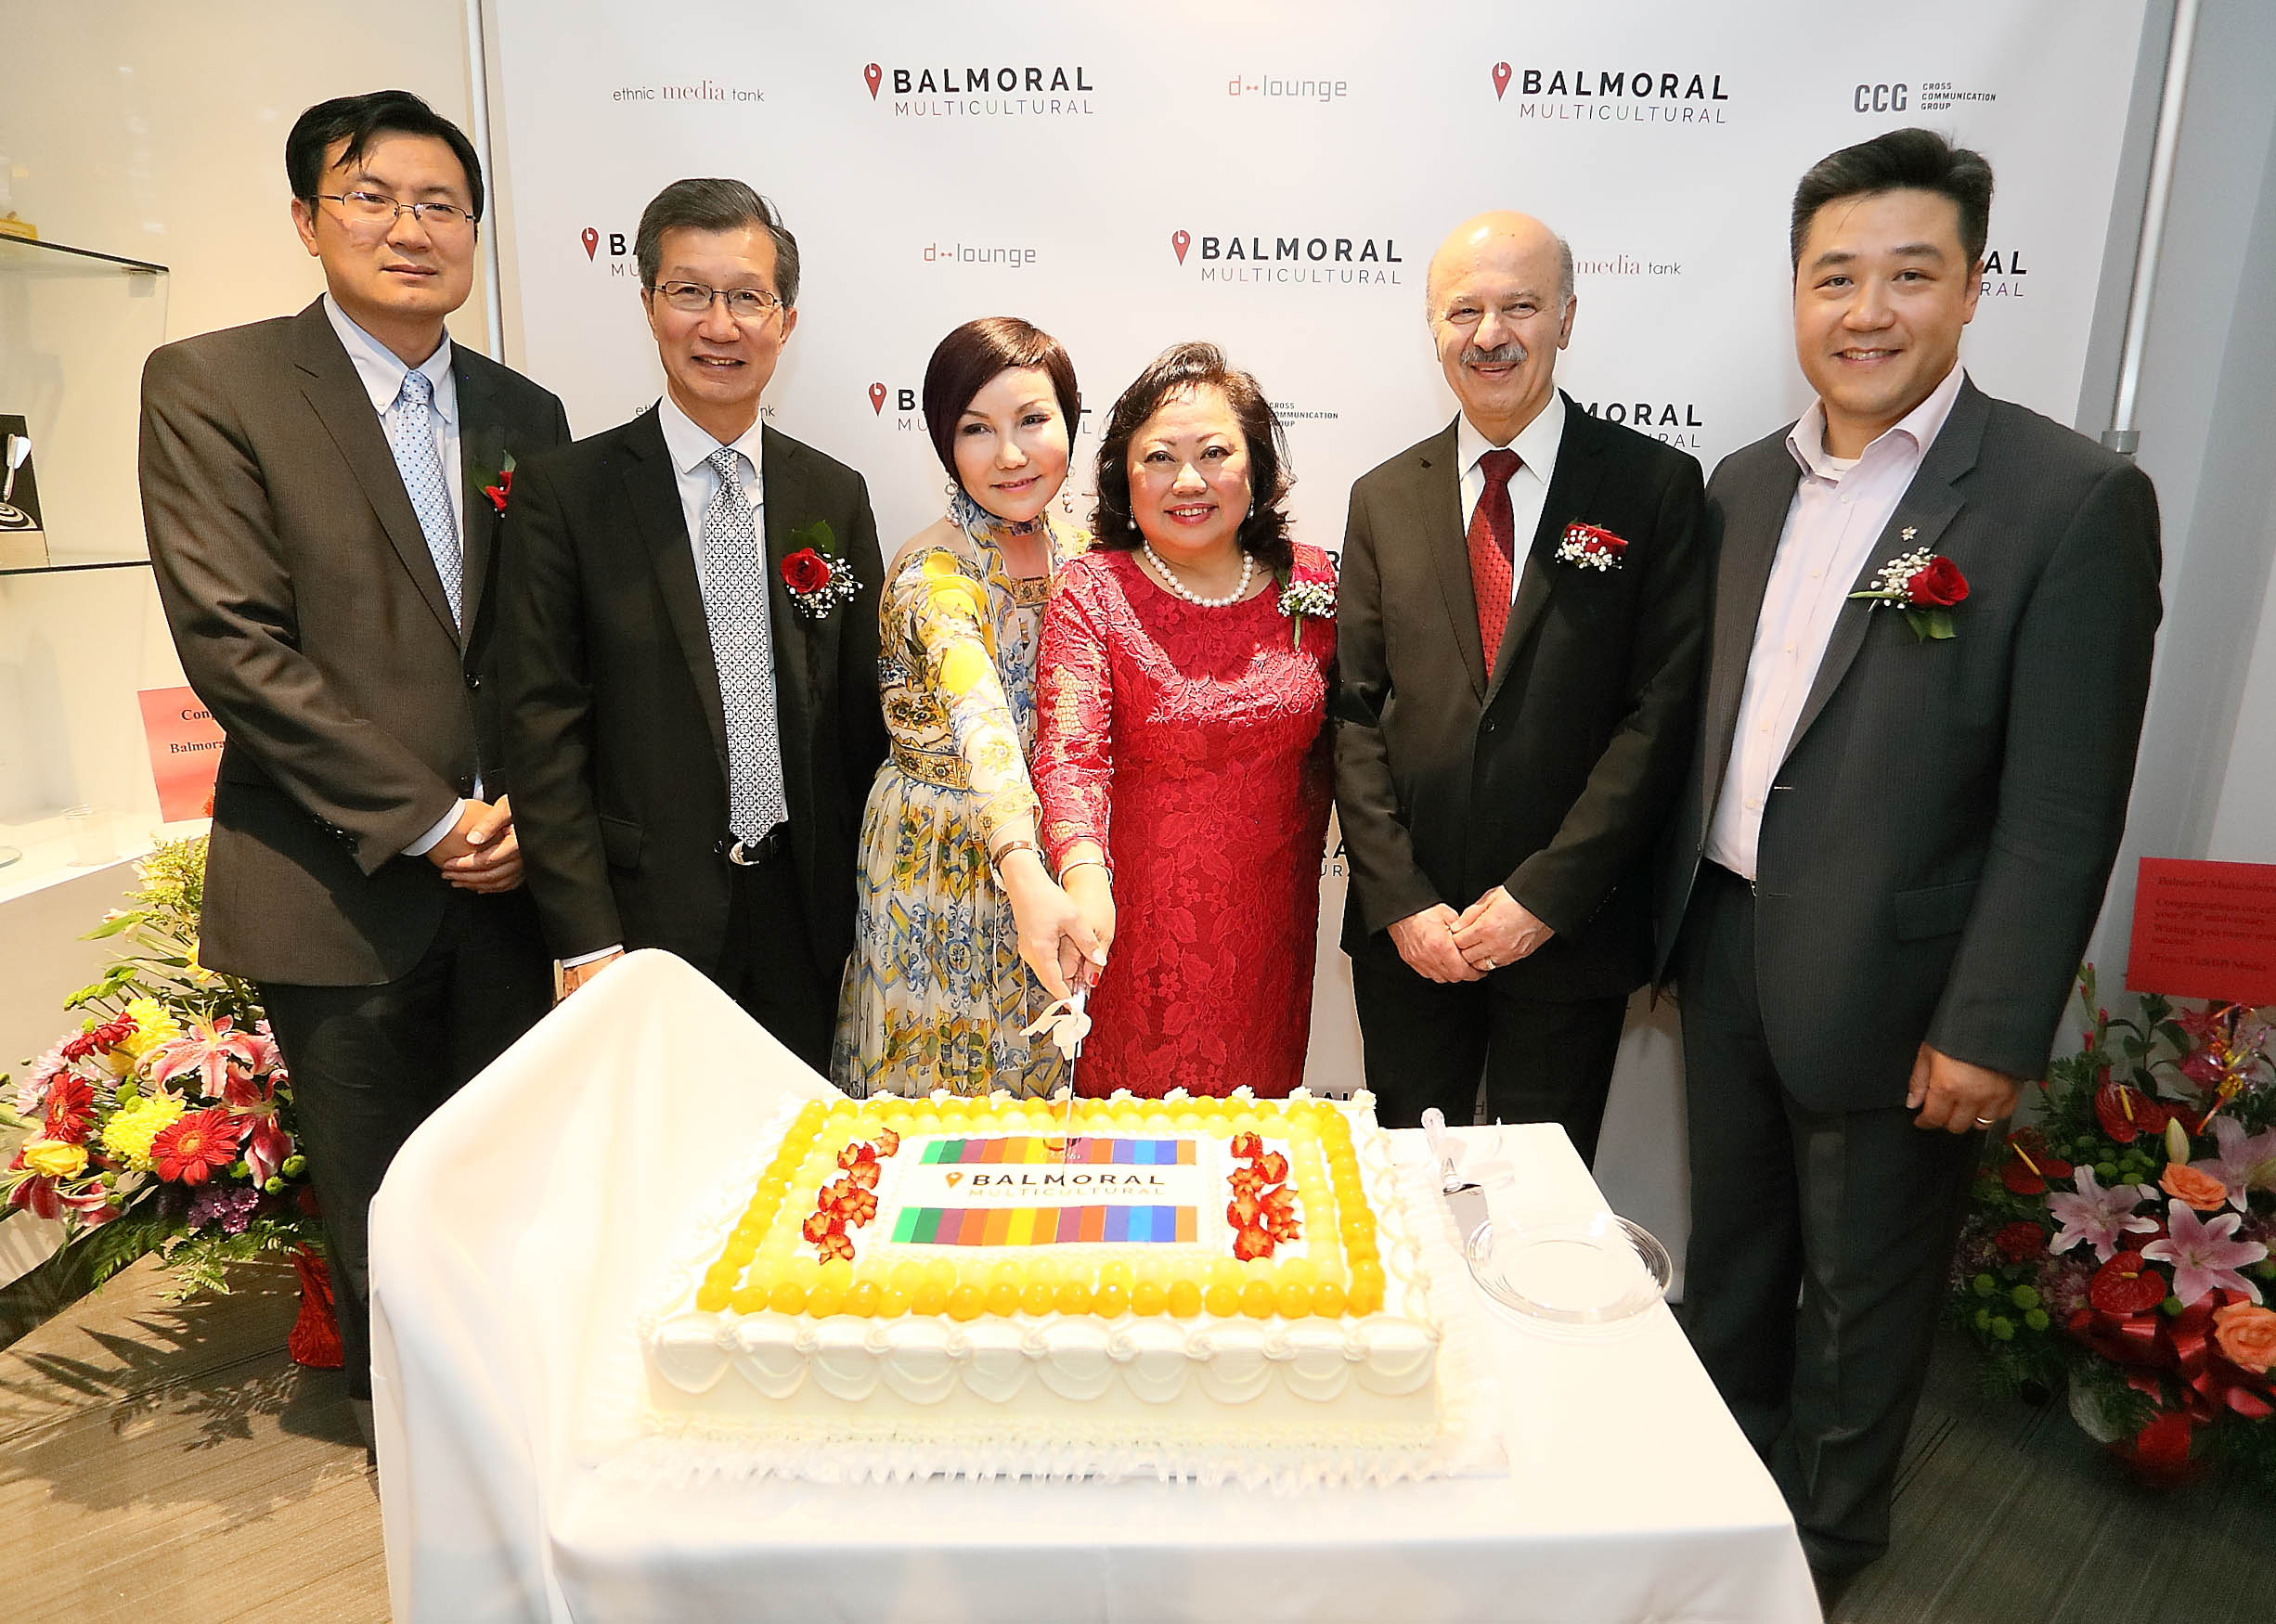 From Left: Xu Wei, Deputy Counsel General of the People's Republic of China in Toronto, Hon Michael Chan, Minister of Citizenship, Immigration and International Trade, CCG President Shirley Sun, Balmoral President Sharifa Khan, Reza Moridi, Minister of Research and Innovation & Minister of Training, Colleges and Universities and MPP Han Dong.